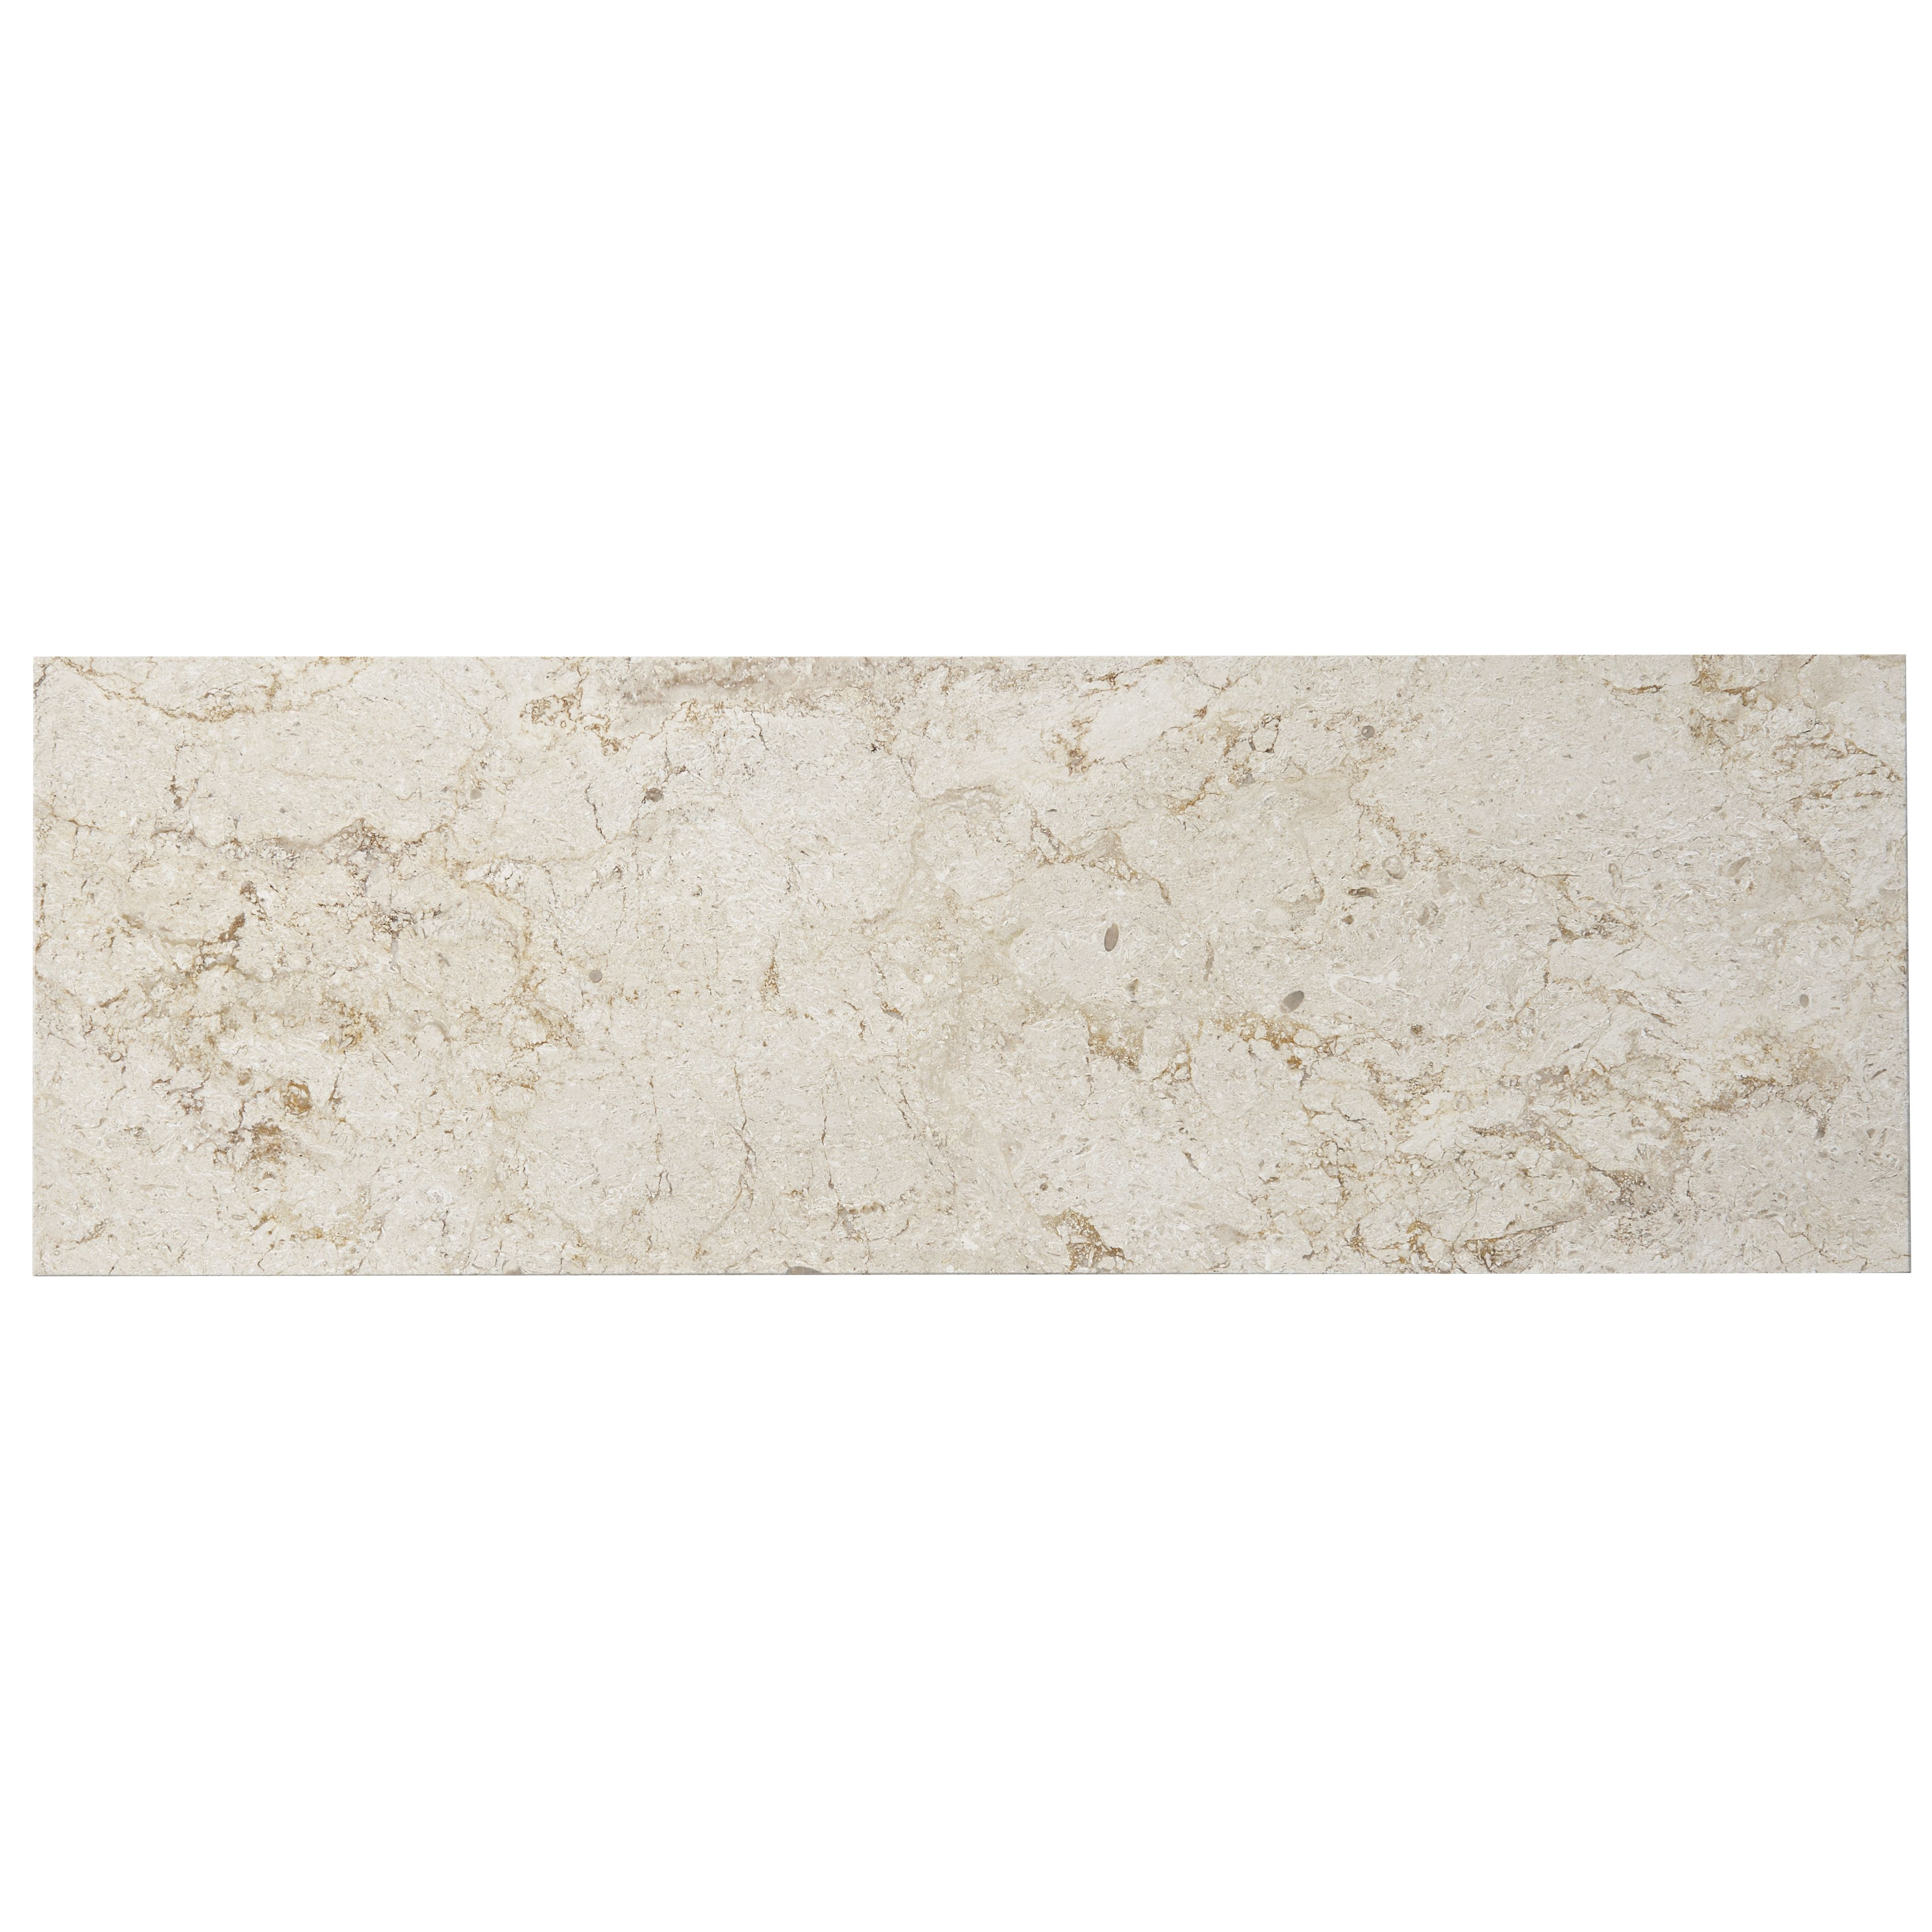 B And Q Kitchen Floor Tiles Oscano Pebble Stone Effect Ceramic Wall Floor Tile Pack Of 6